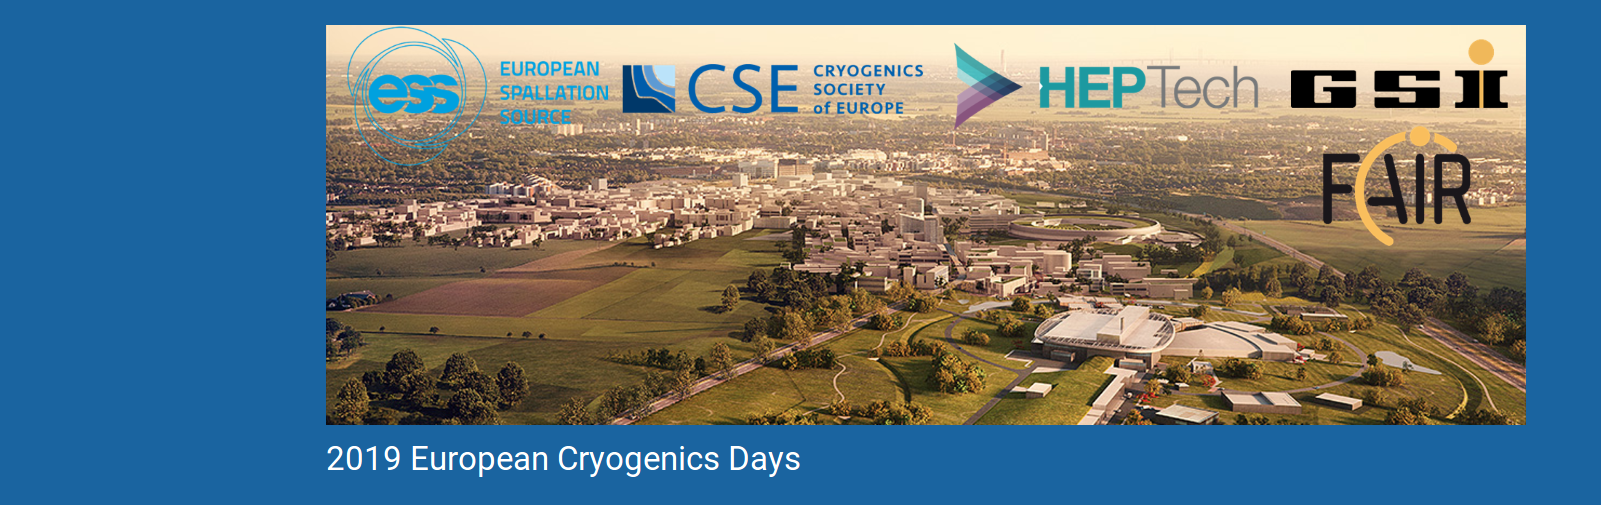 European Cryogenics Days 2019